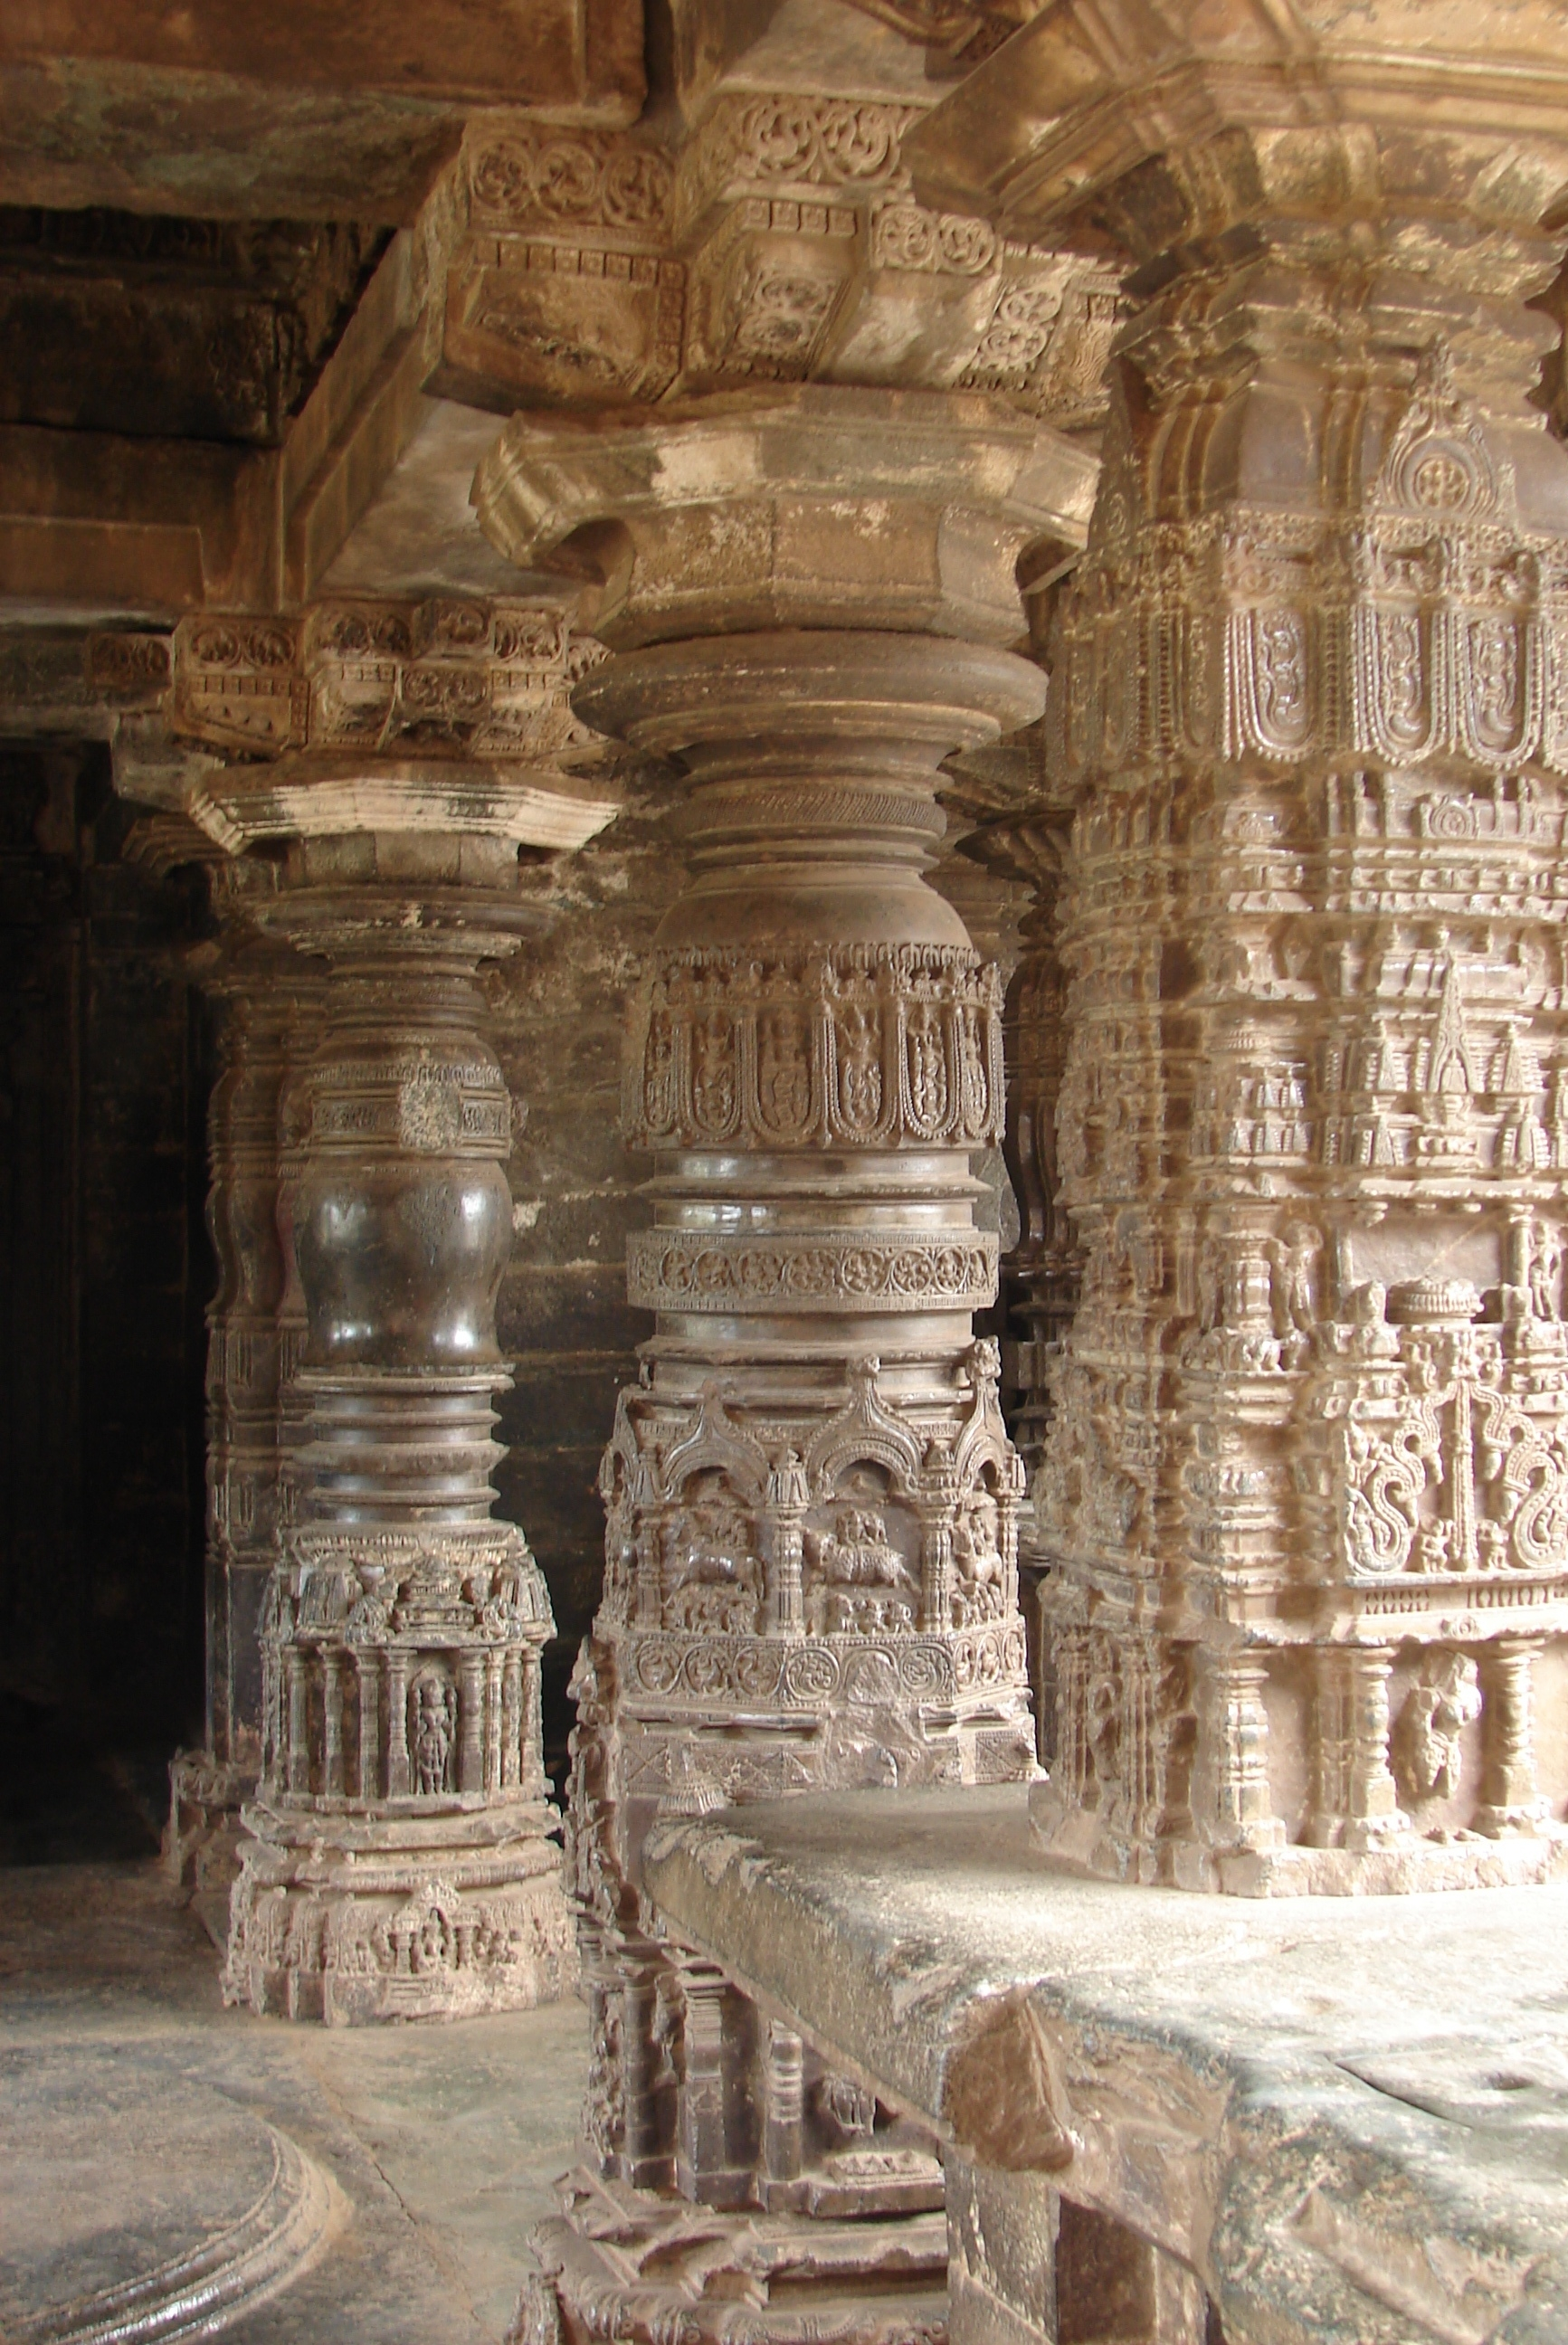 Gadag style Ornate pillars at Sarasvati Temple, Trikuteshwara temple (complex) at Gadag